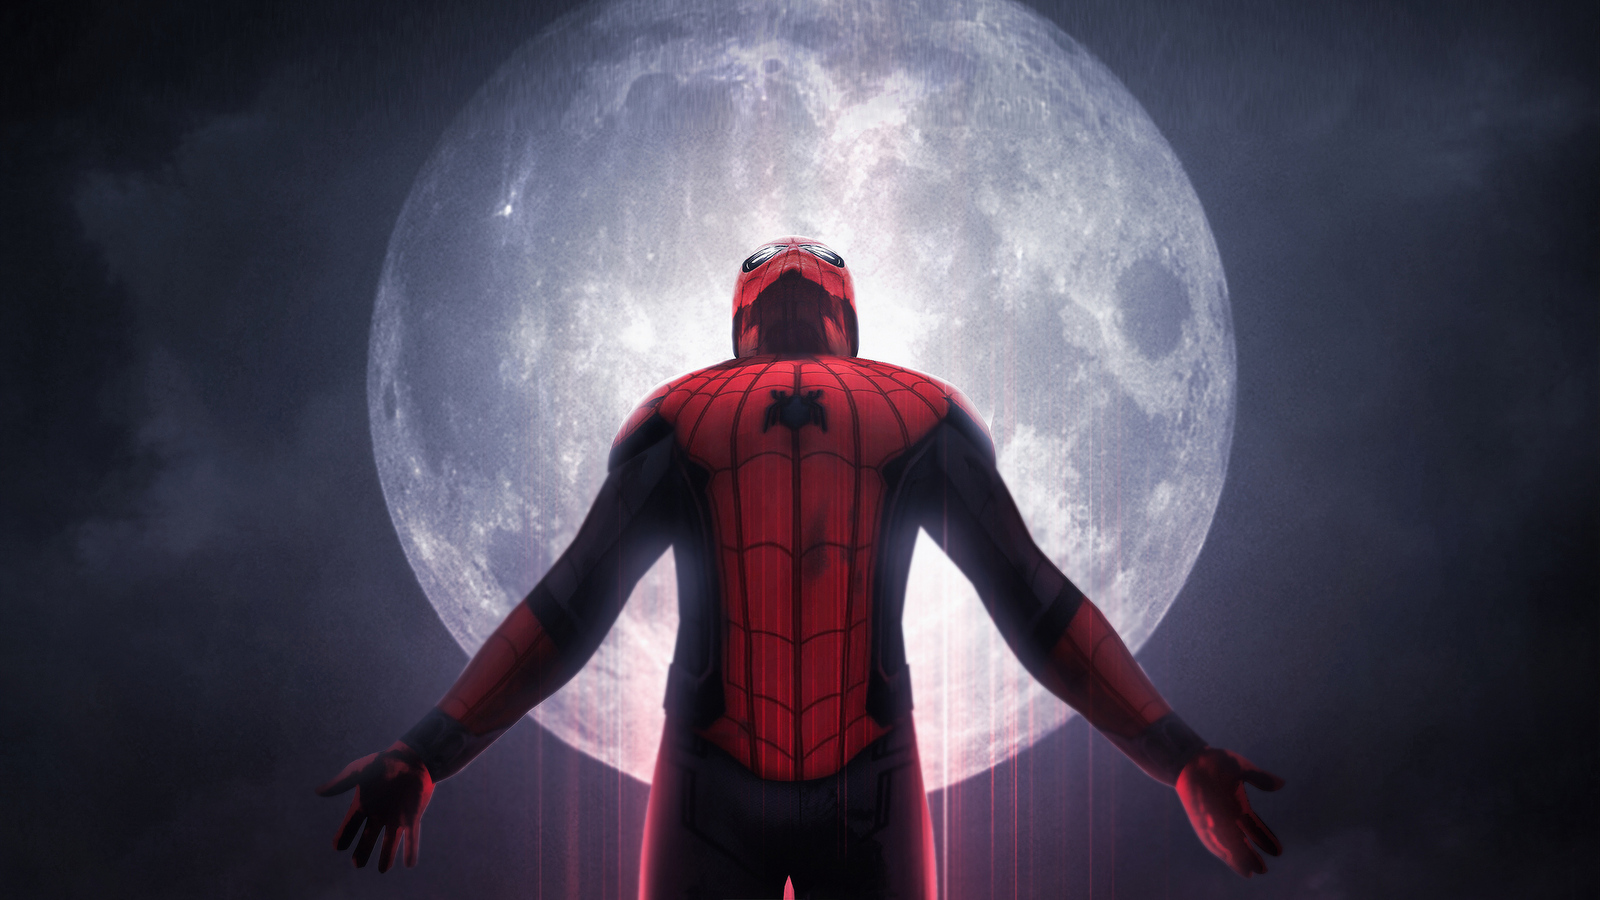 spiderman-far-from-home-art-4k-7g.jpg